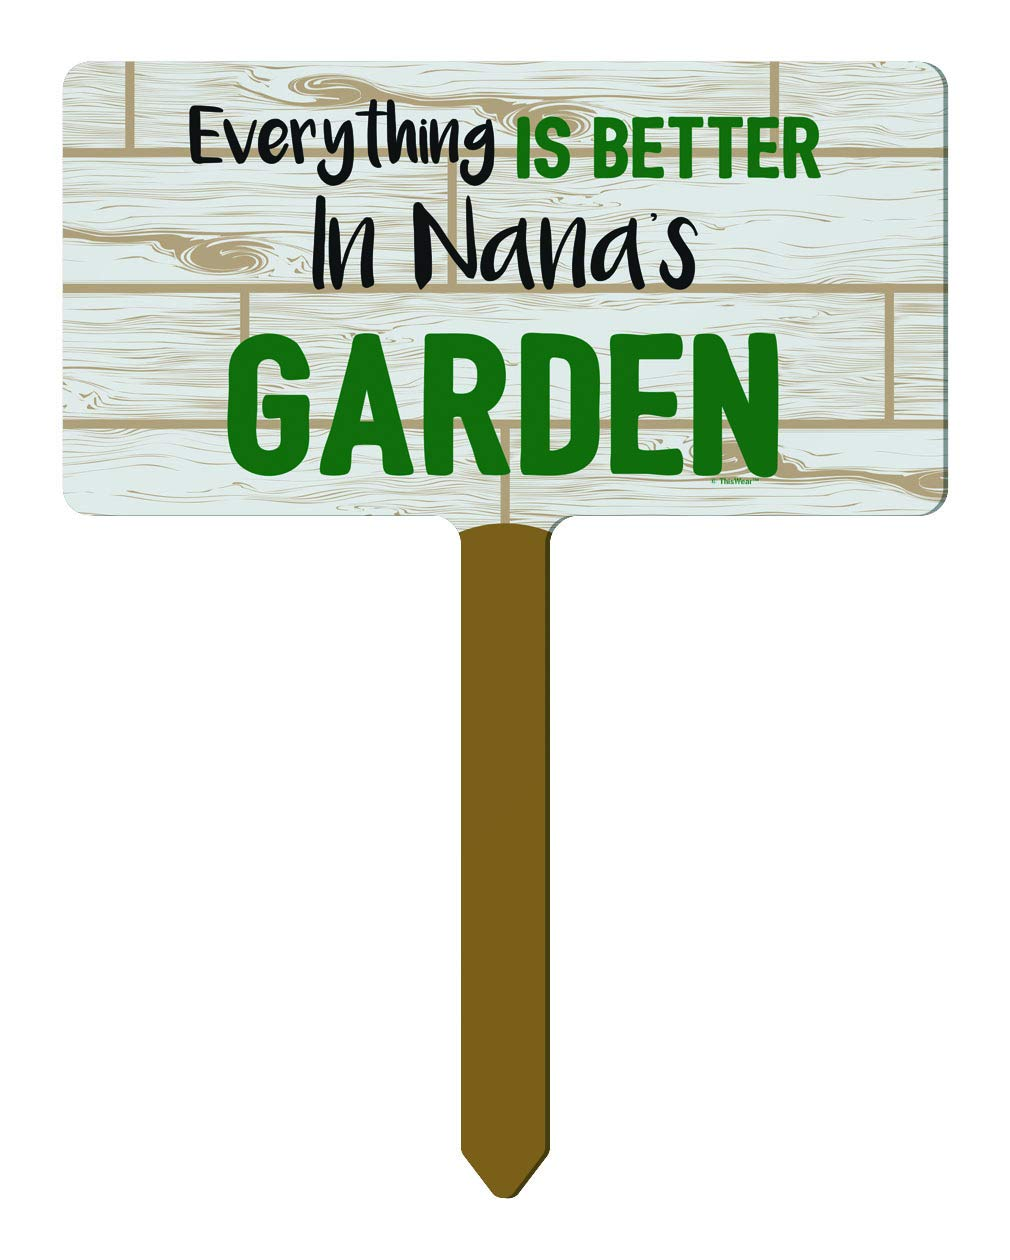 ThisWear Nana Gardening Gifts Everything is Better in Nanas Garden Nana Gifts 1-Pack Rectangle Garden Sign